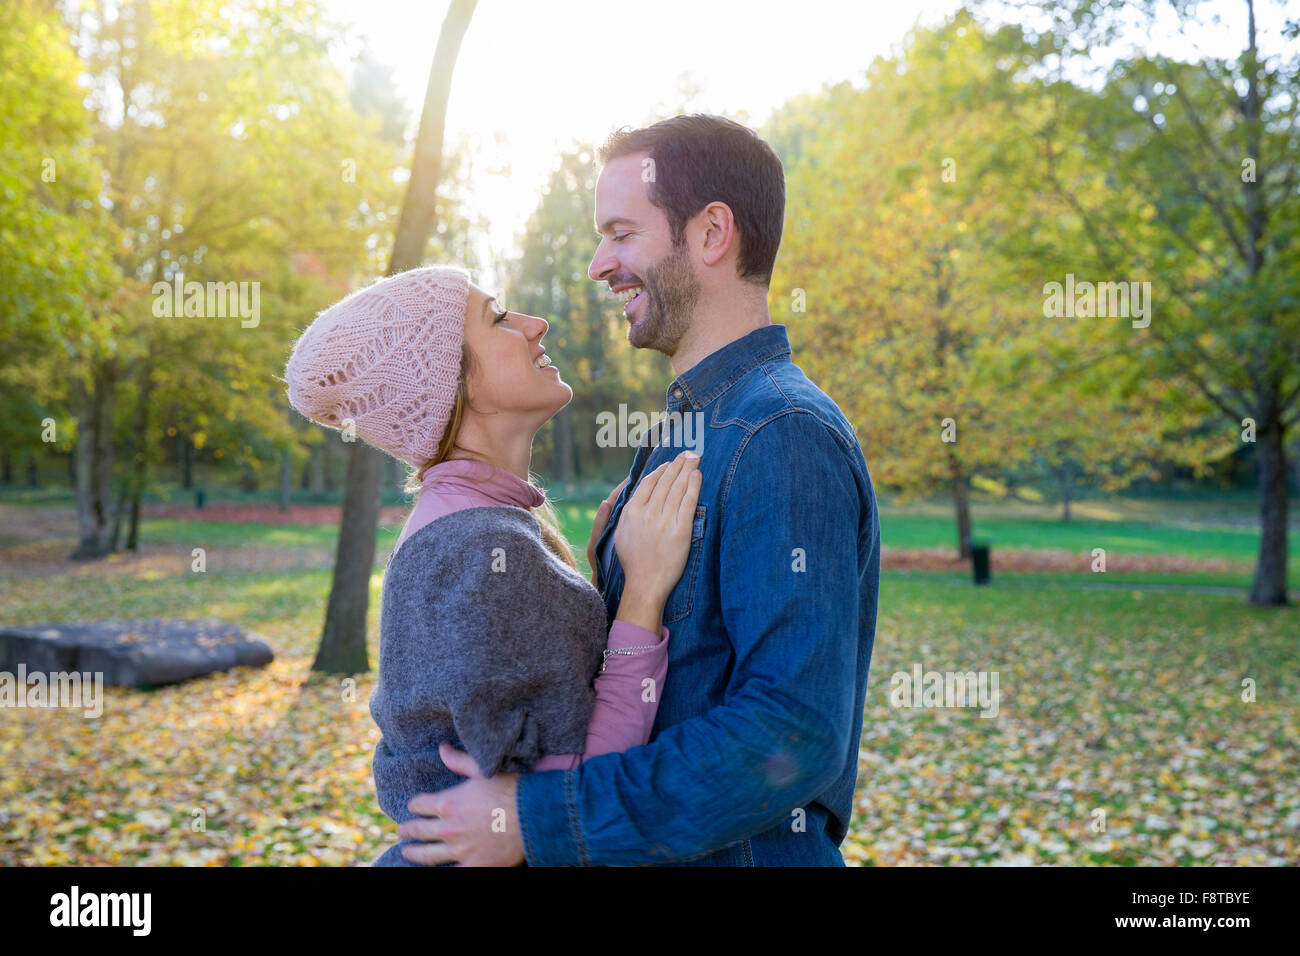 Young couple dating in Park - Stock Image